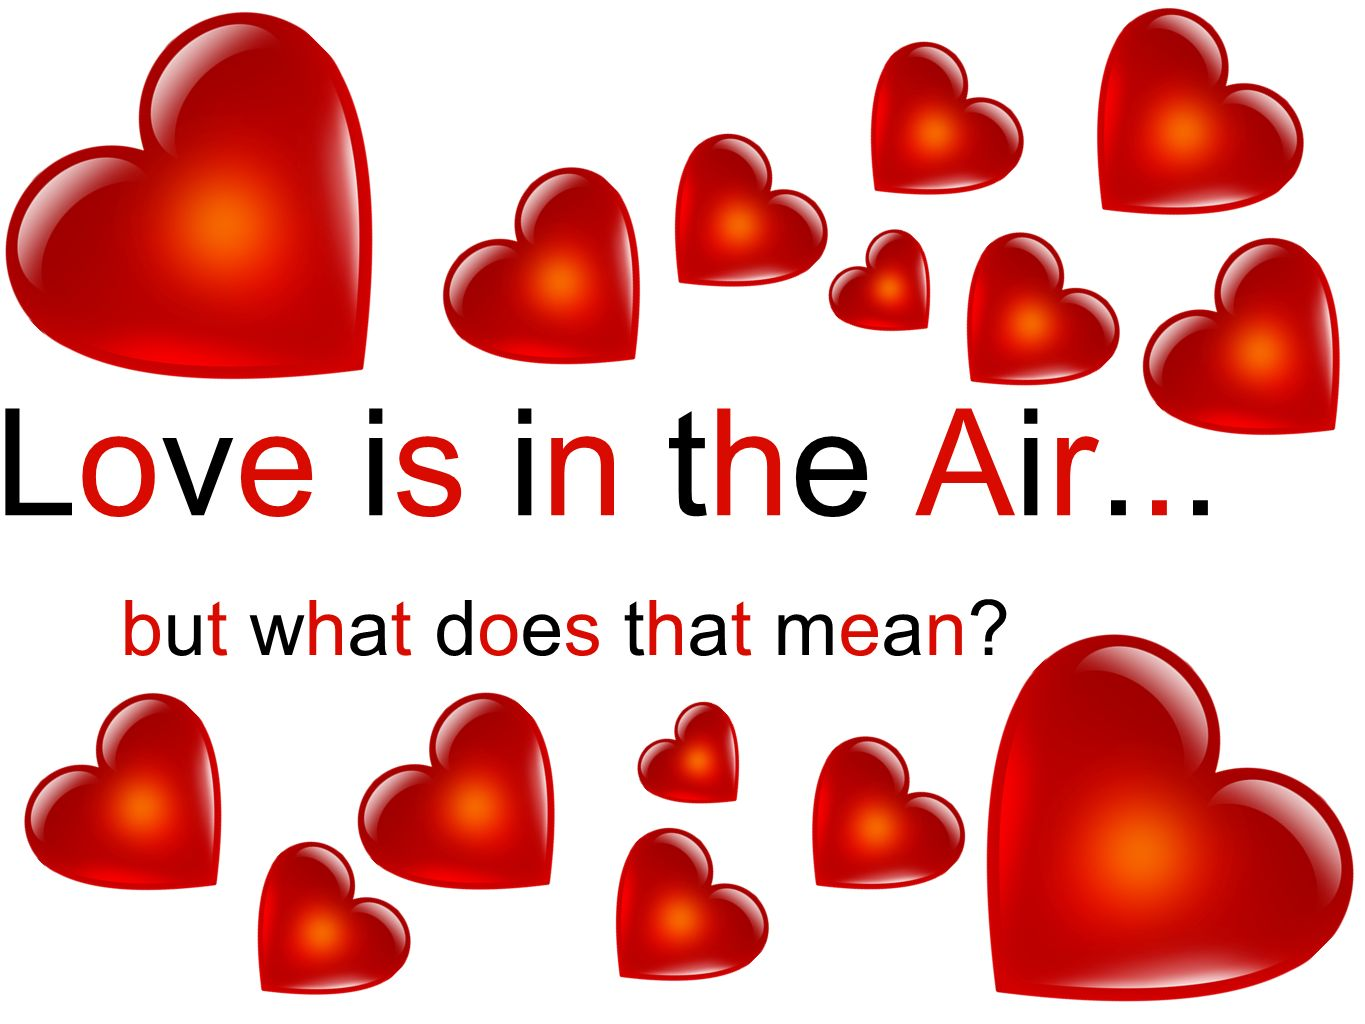 Love is in the Air... but what does that mean